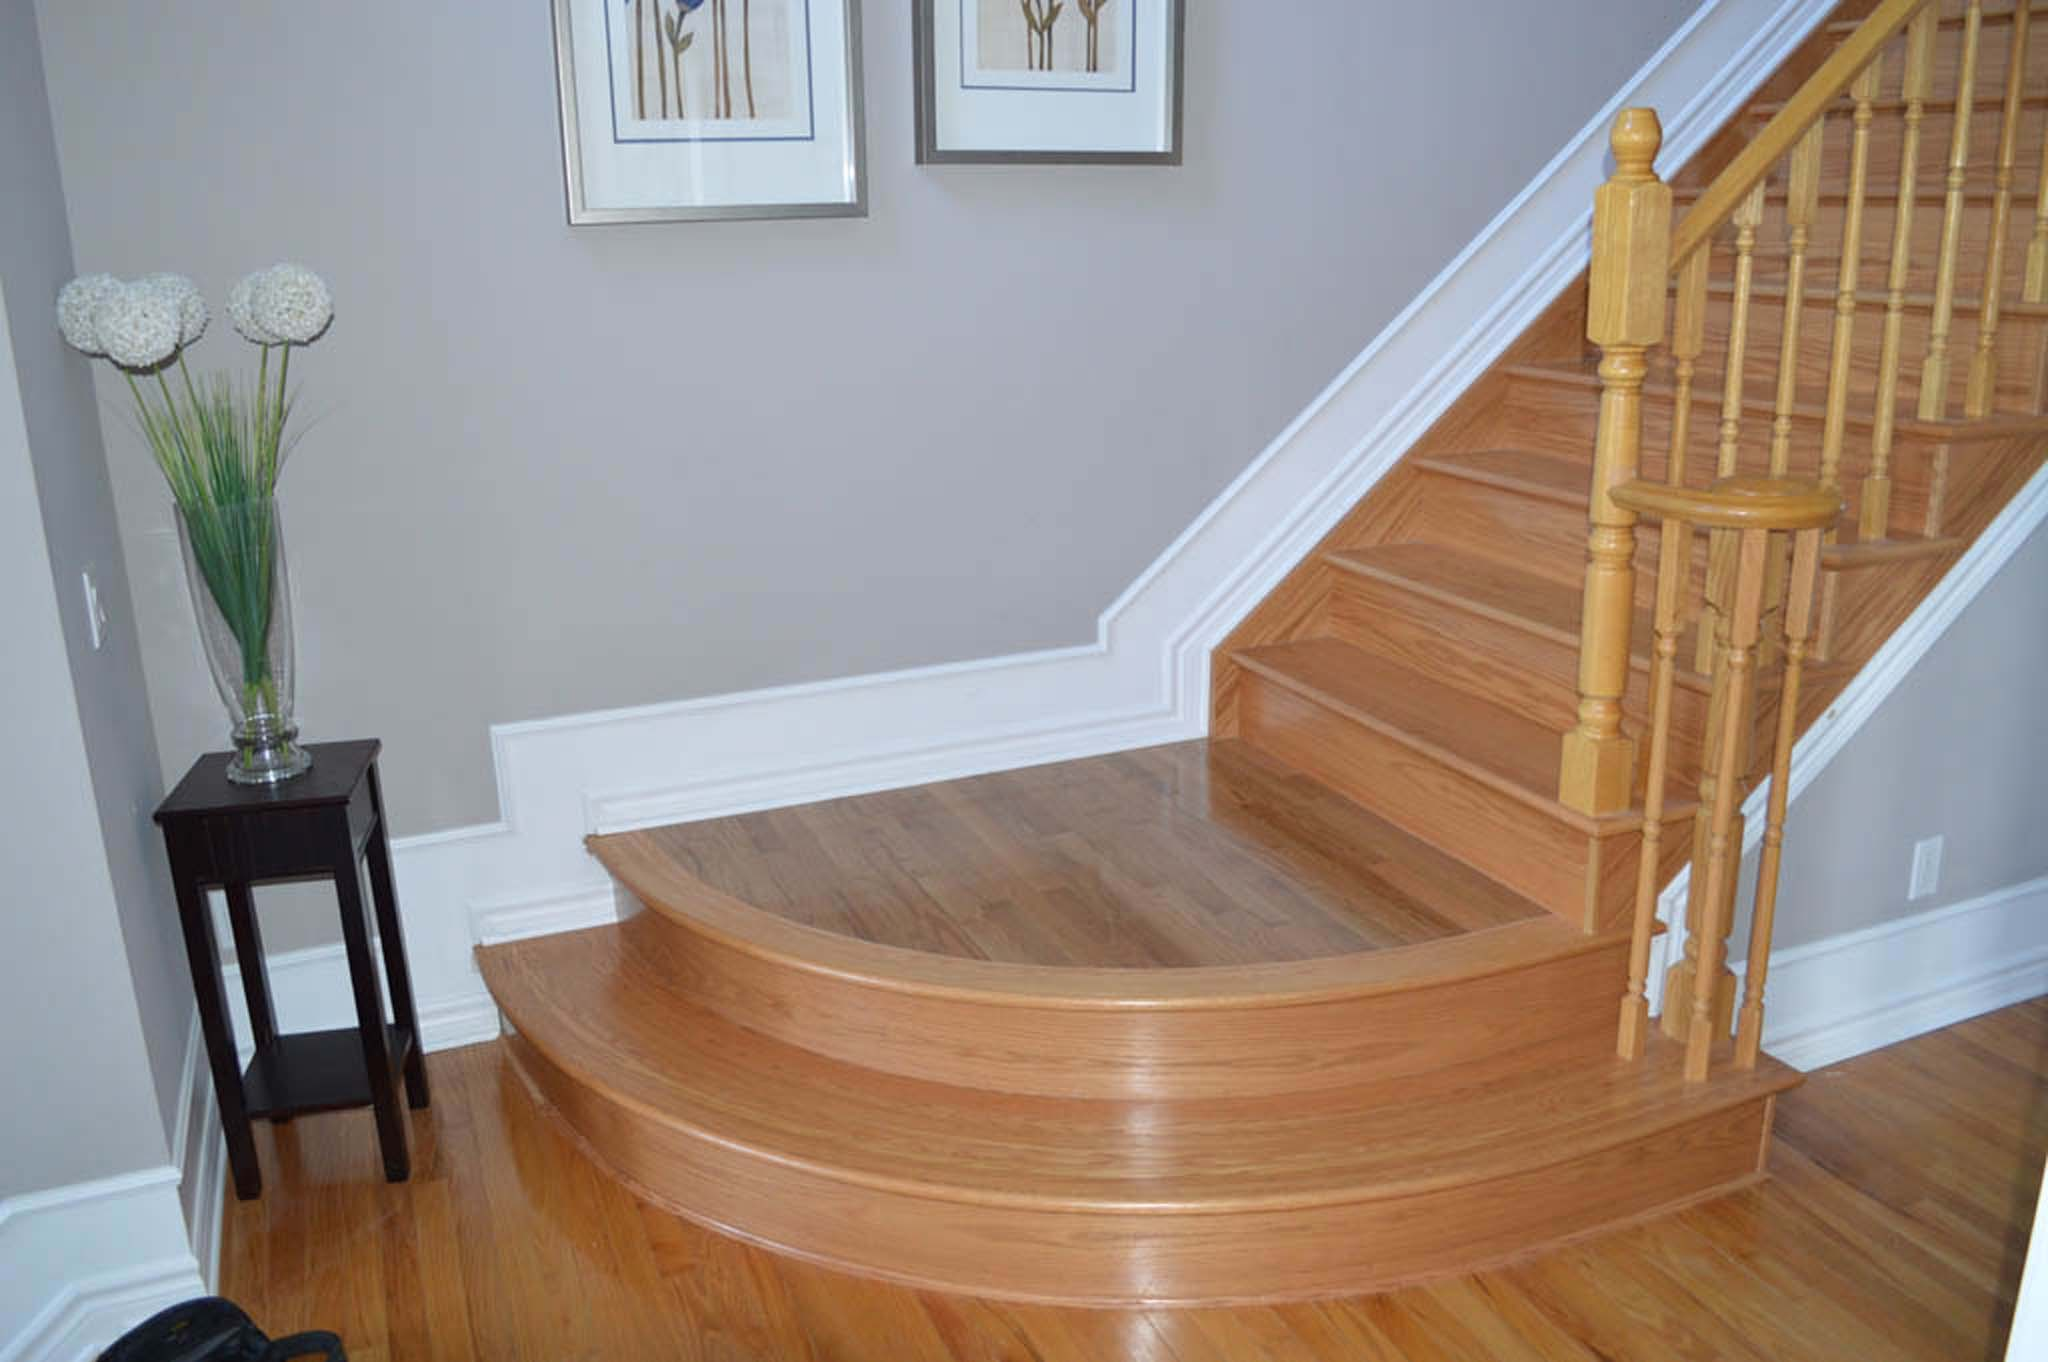 stairs durable floors should can flooring the install laminate be pretty you on reasons